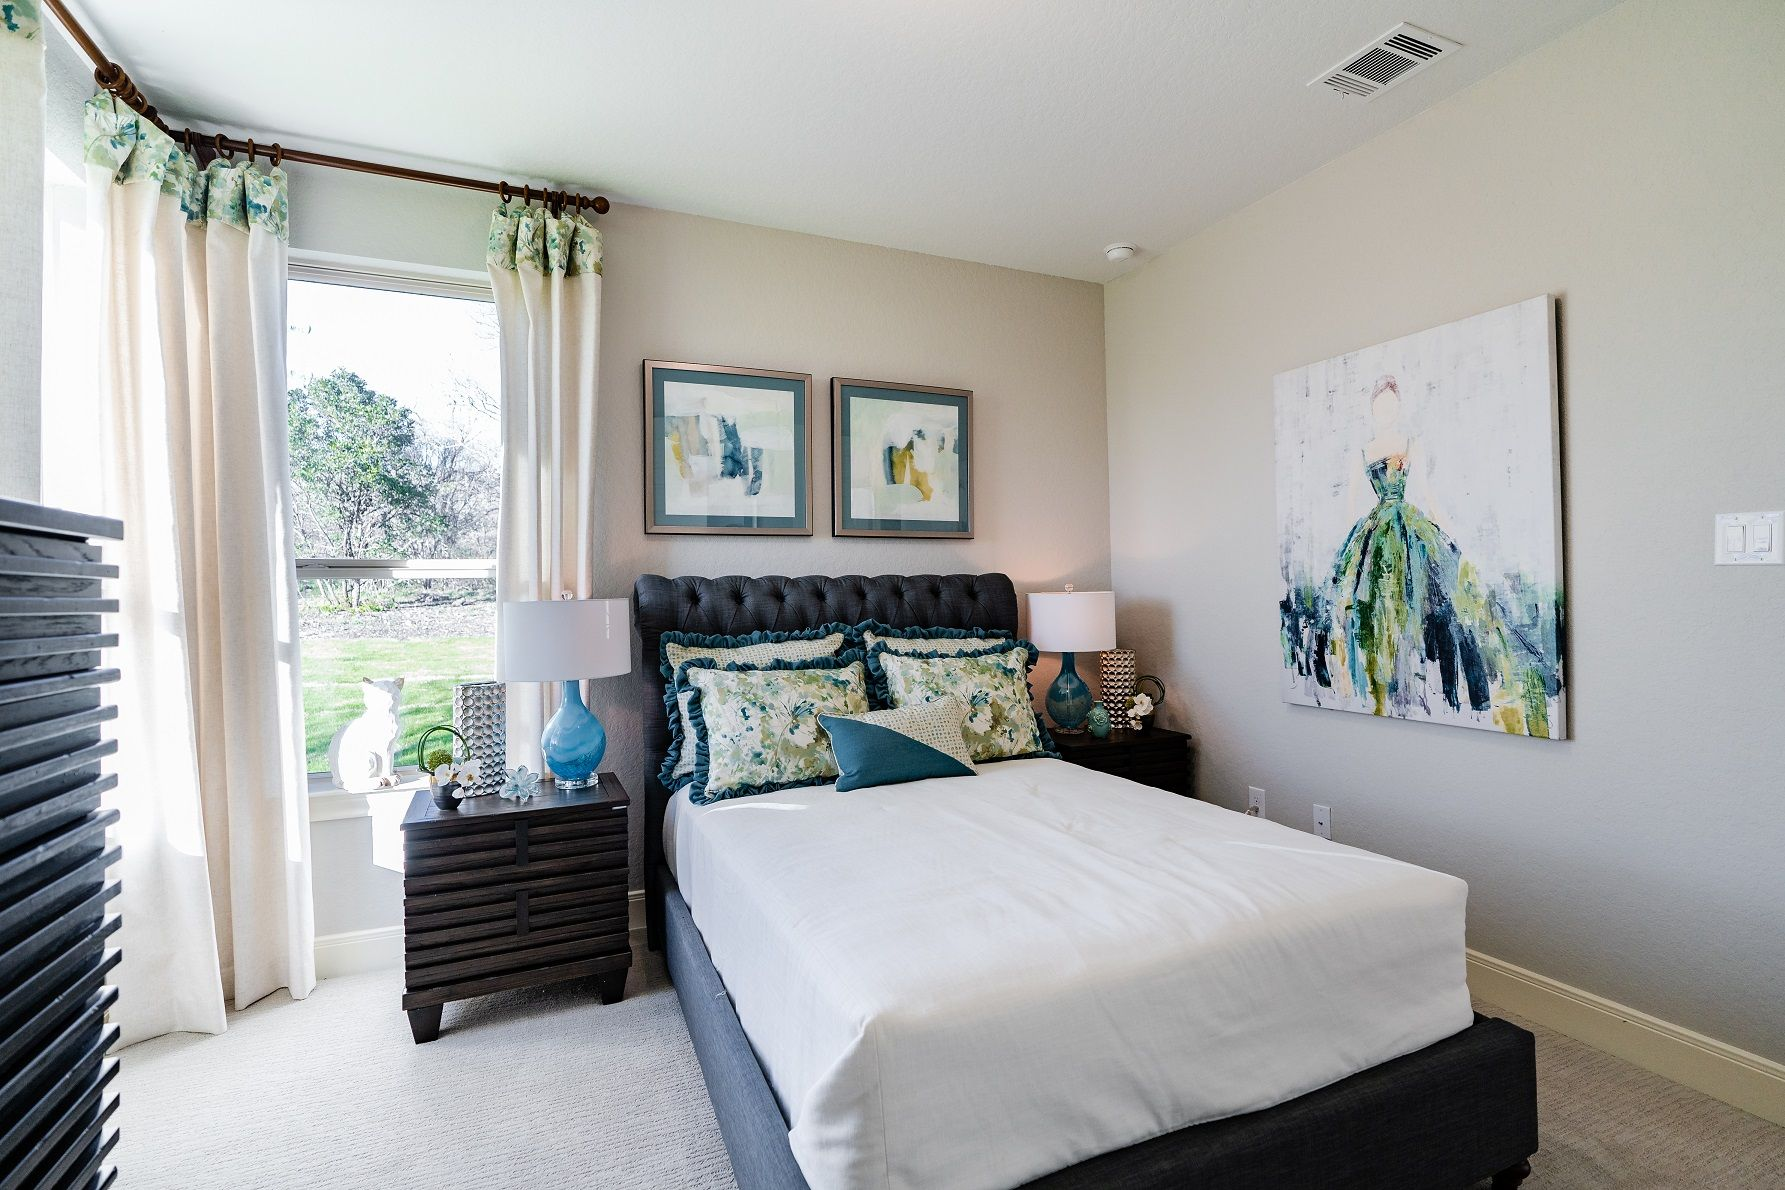 Bedroom featured in the Braunig By Empire Communities in San Antonio, TX